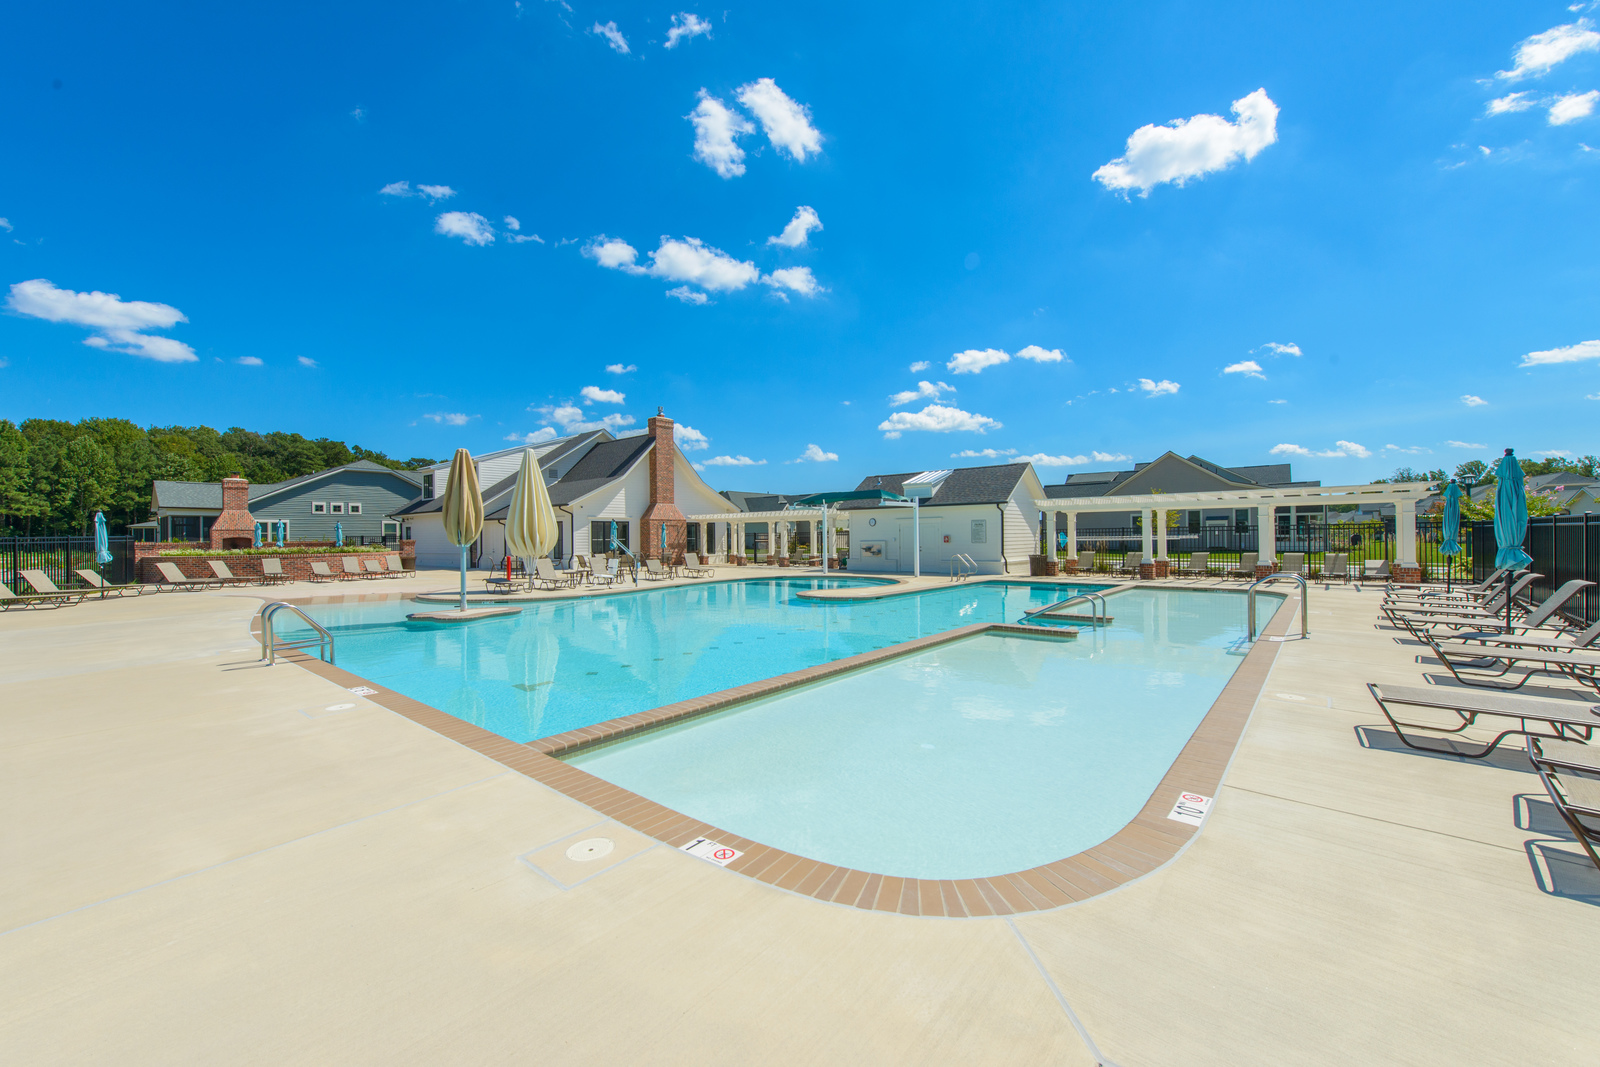 Enjoy all the amenities available within the clubhouse at Batson Creek Estates including a pool and fitness center.